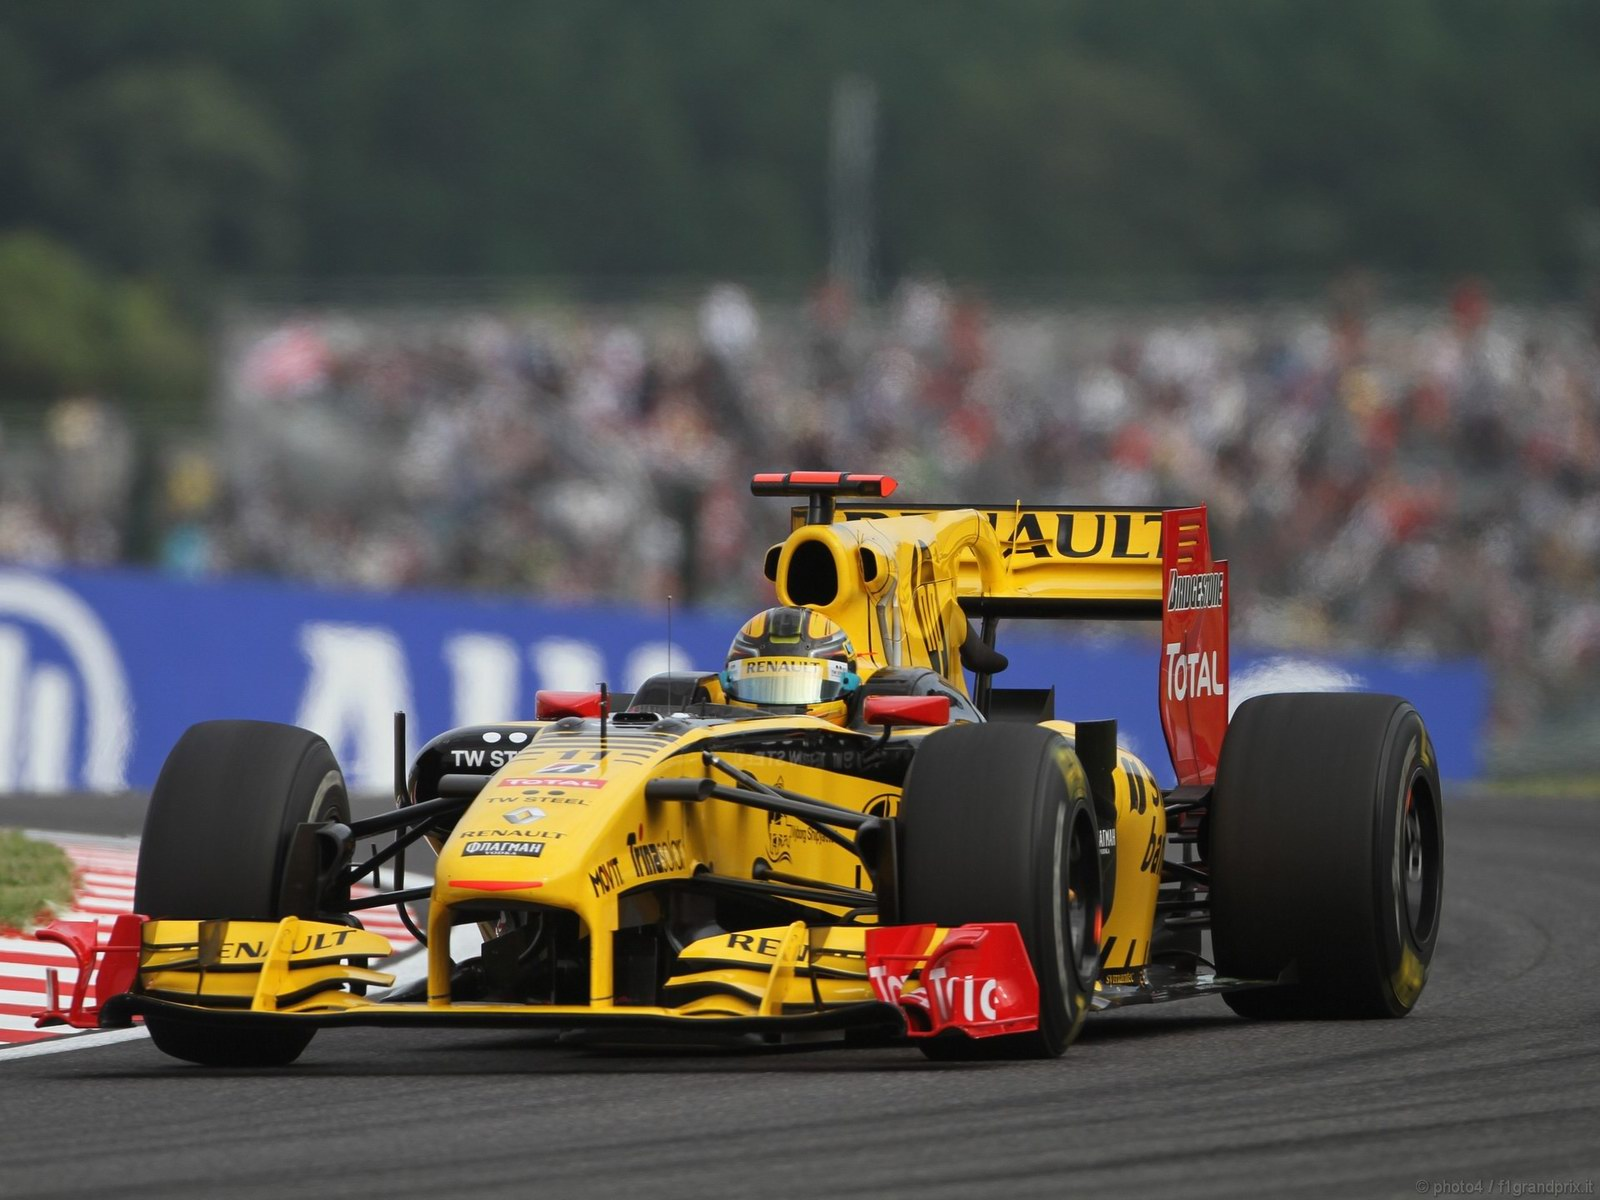 pojazdy - formula1 - gp_giappone_wallpapers_000050